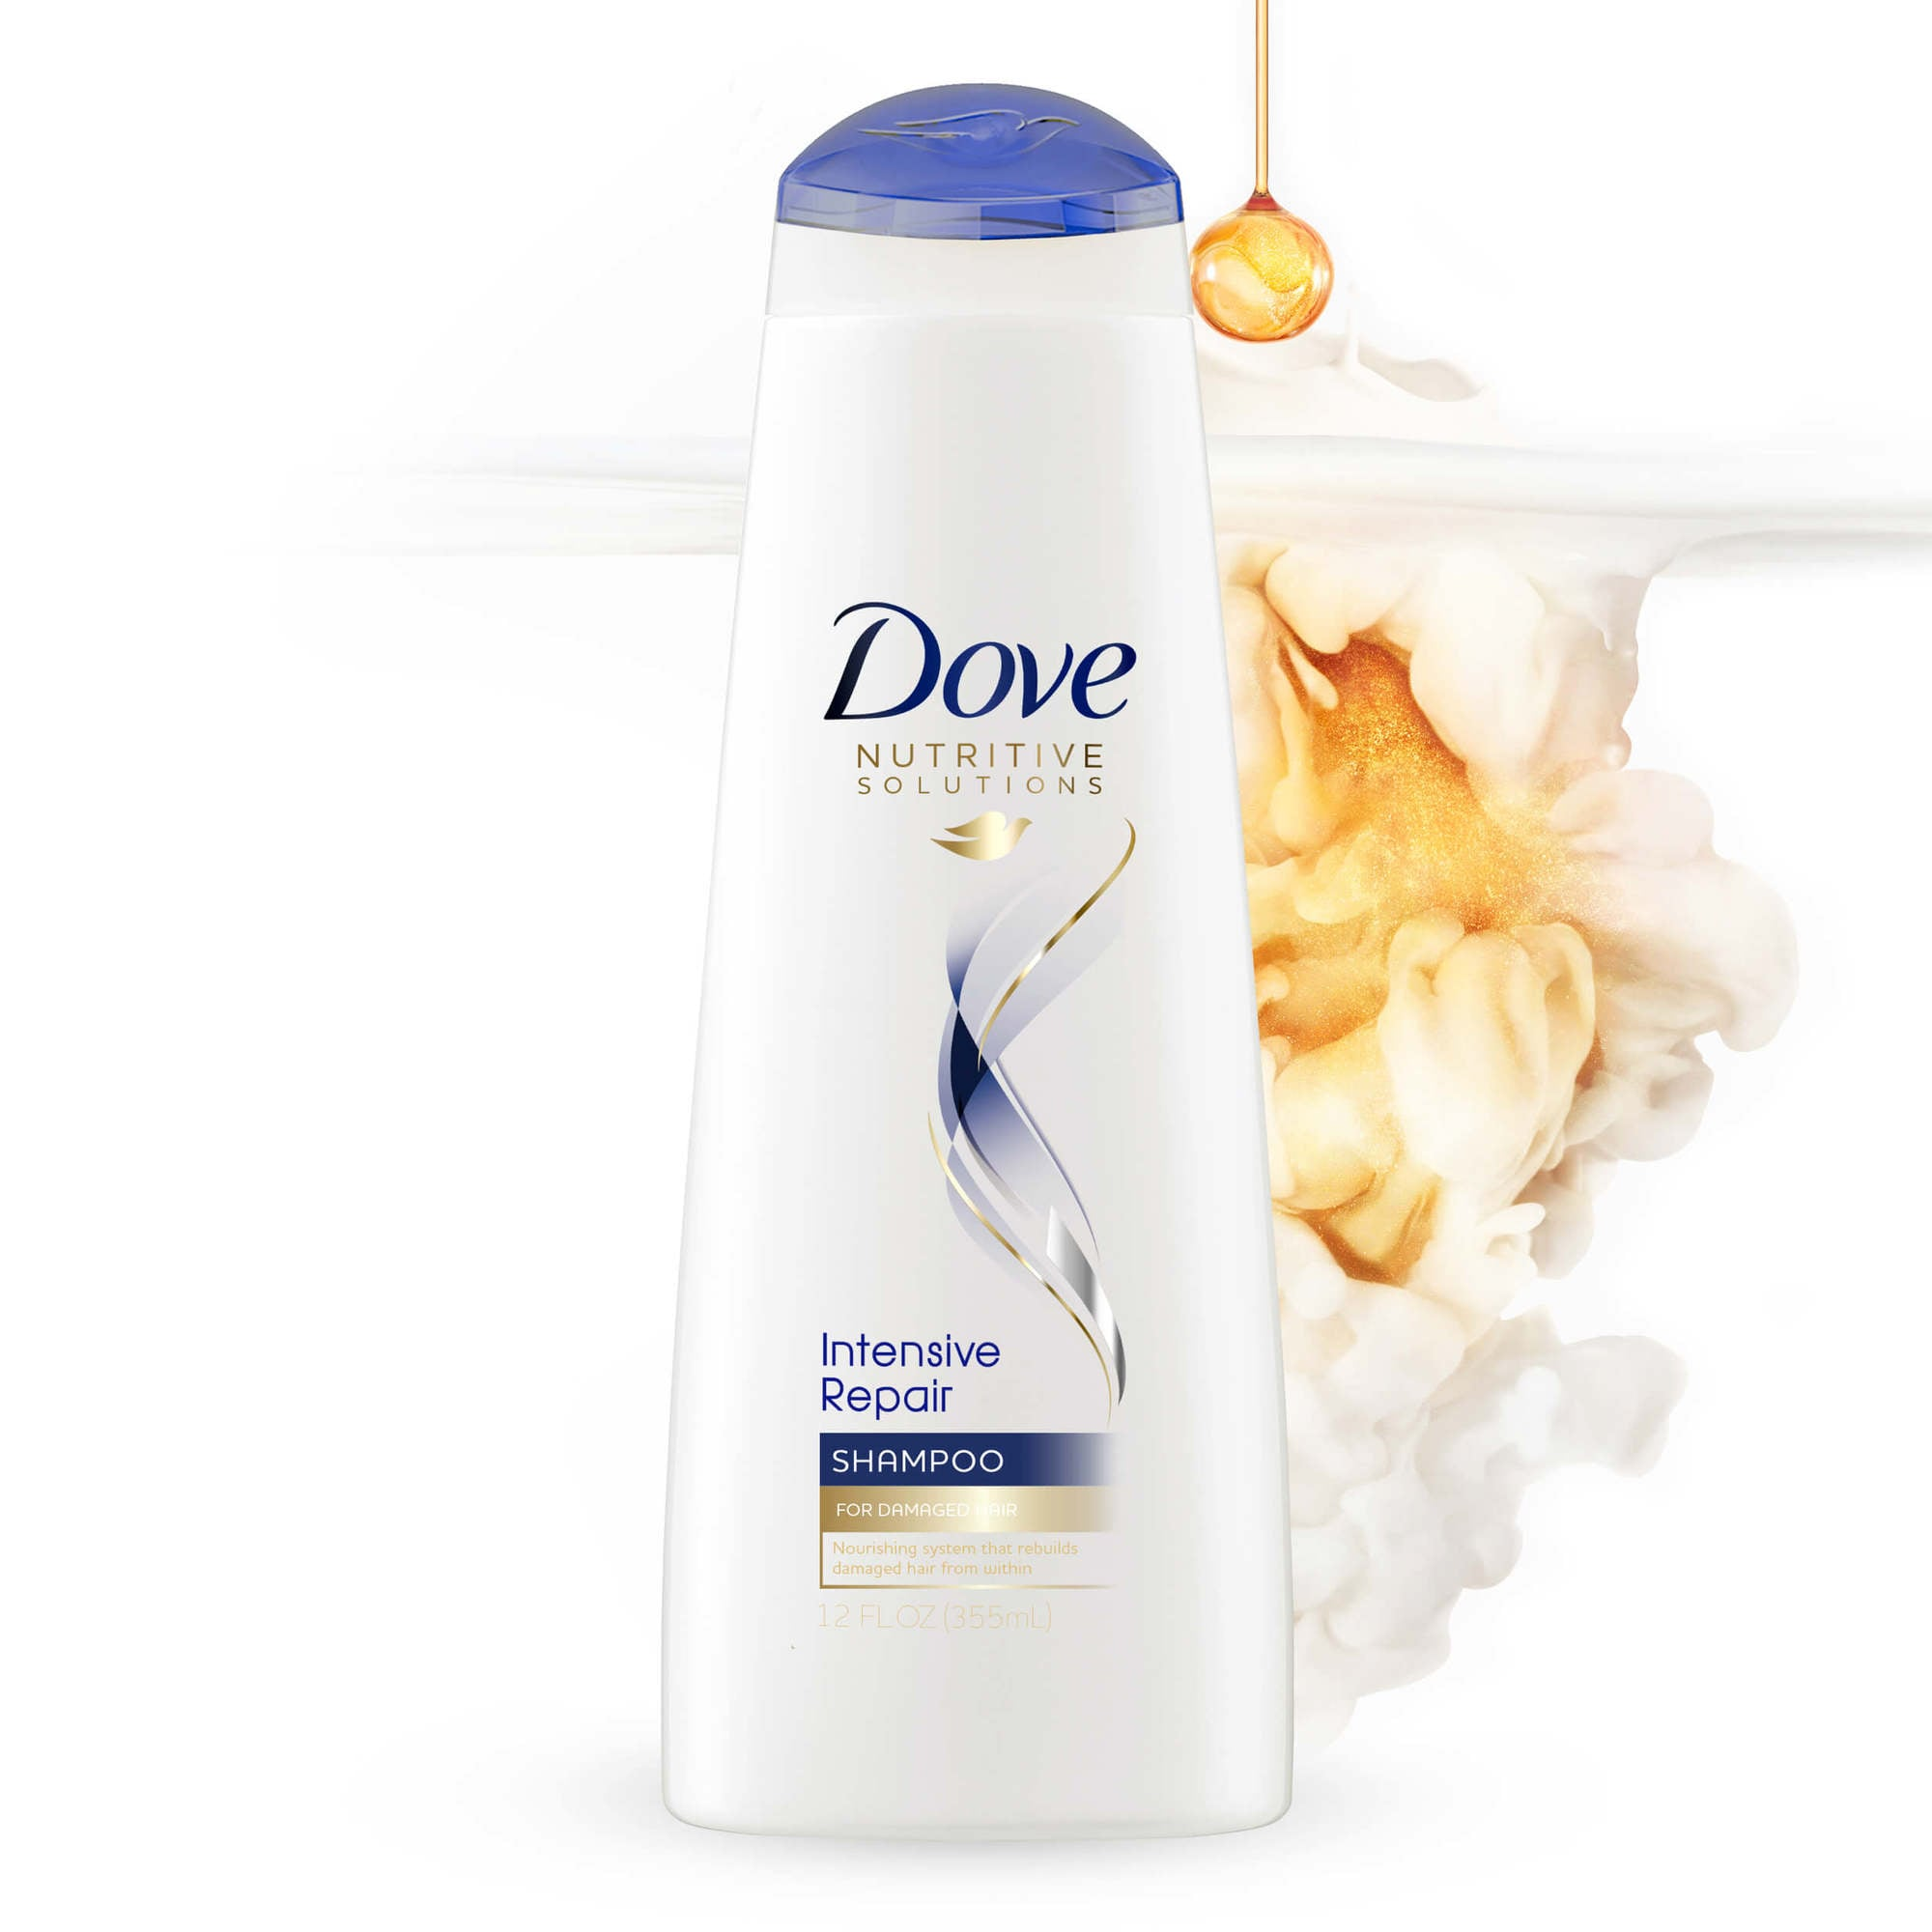 Dove Intensive Repair The Hair Care System You Need